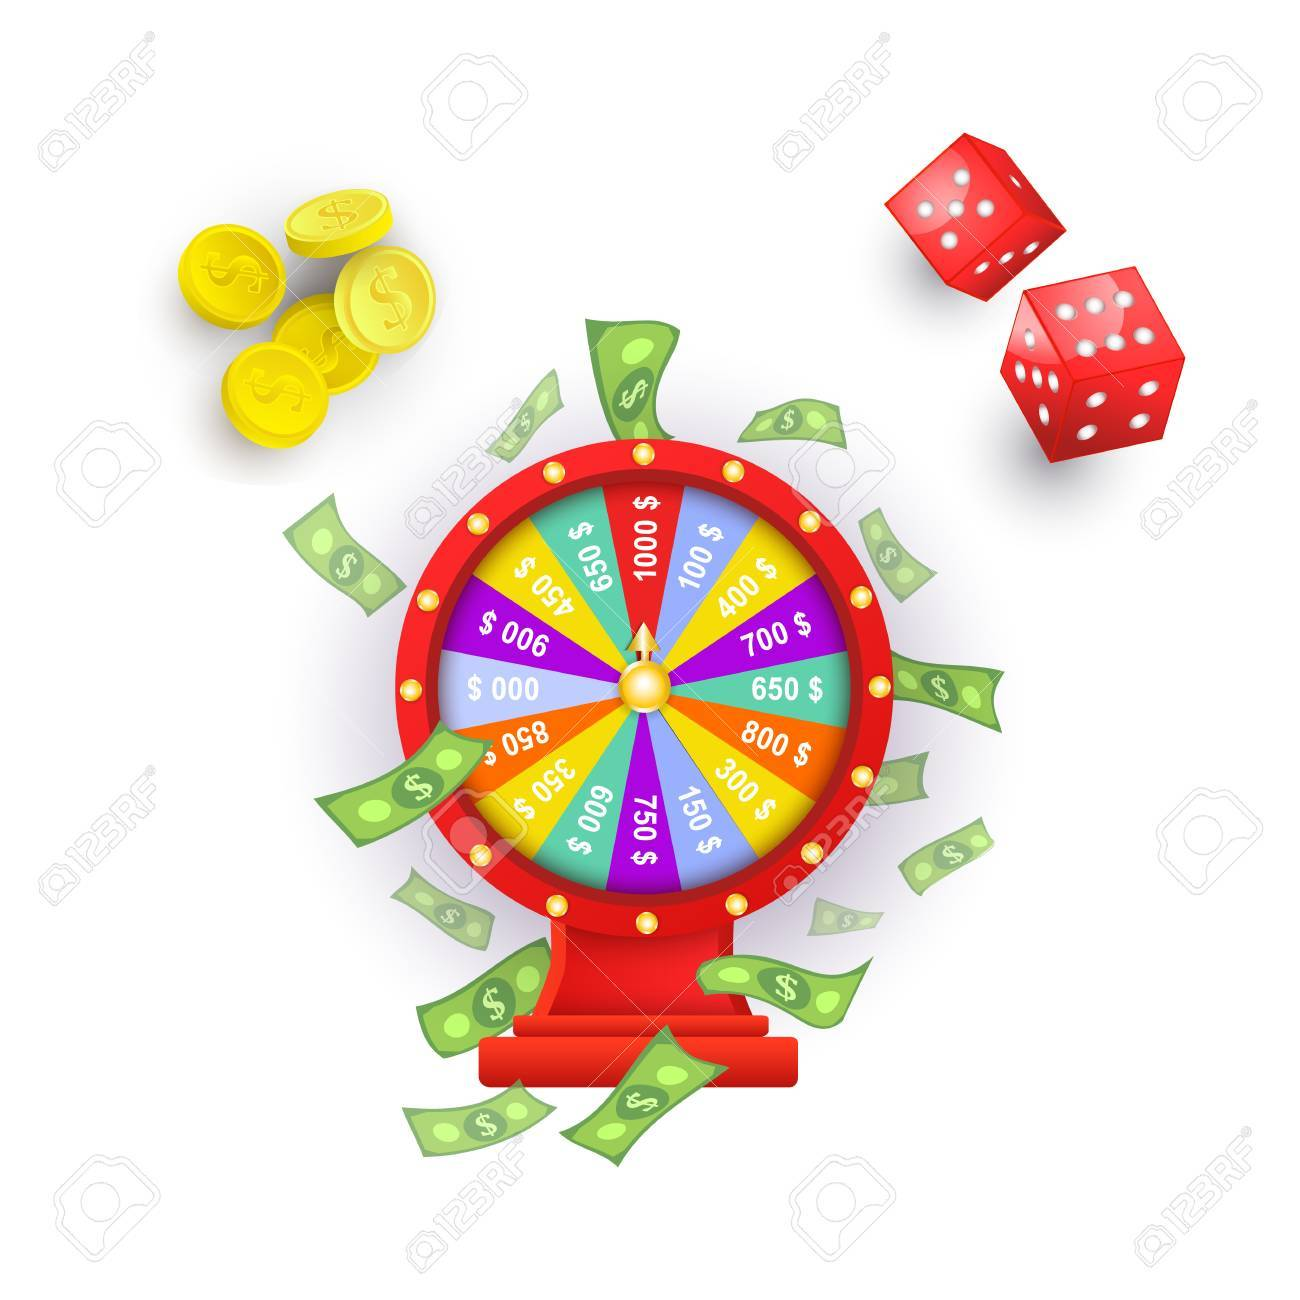 Traditional european roulette table vector illustration stock vector - American Roulette Vector Flat Cartoon Lucky Wheel Of Fortune With Dollar Rain Around Gambling